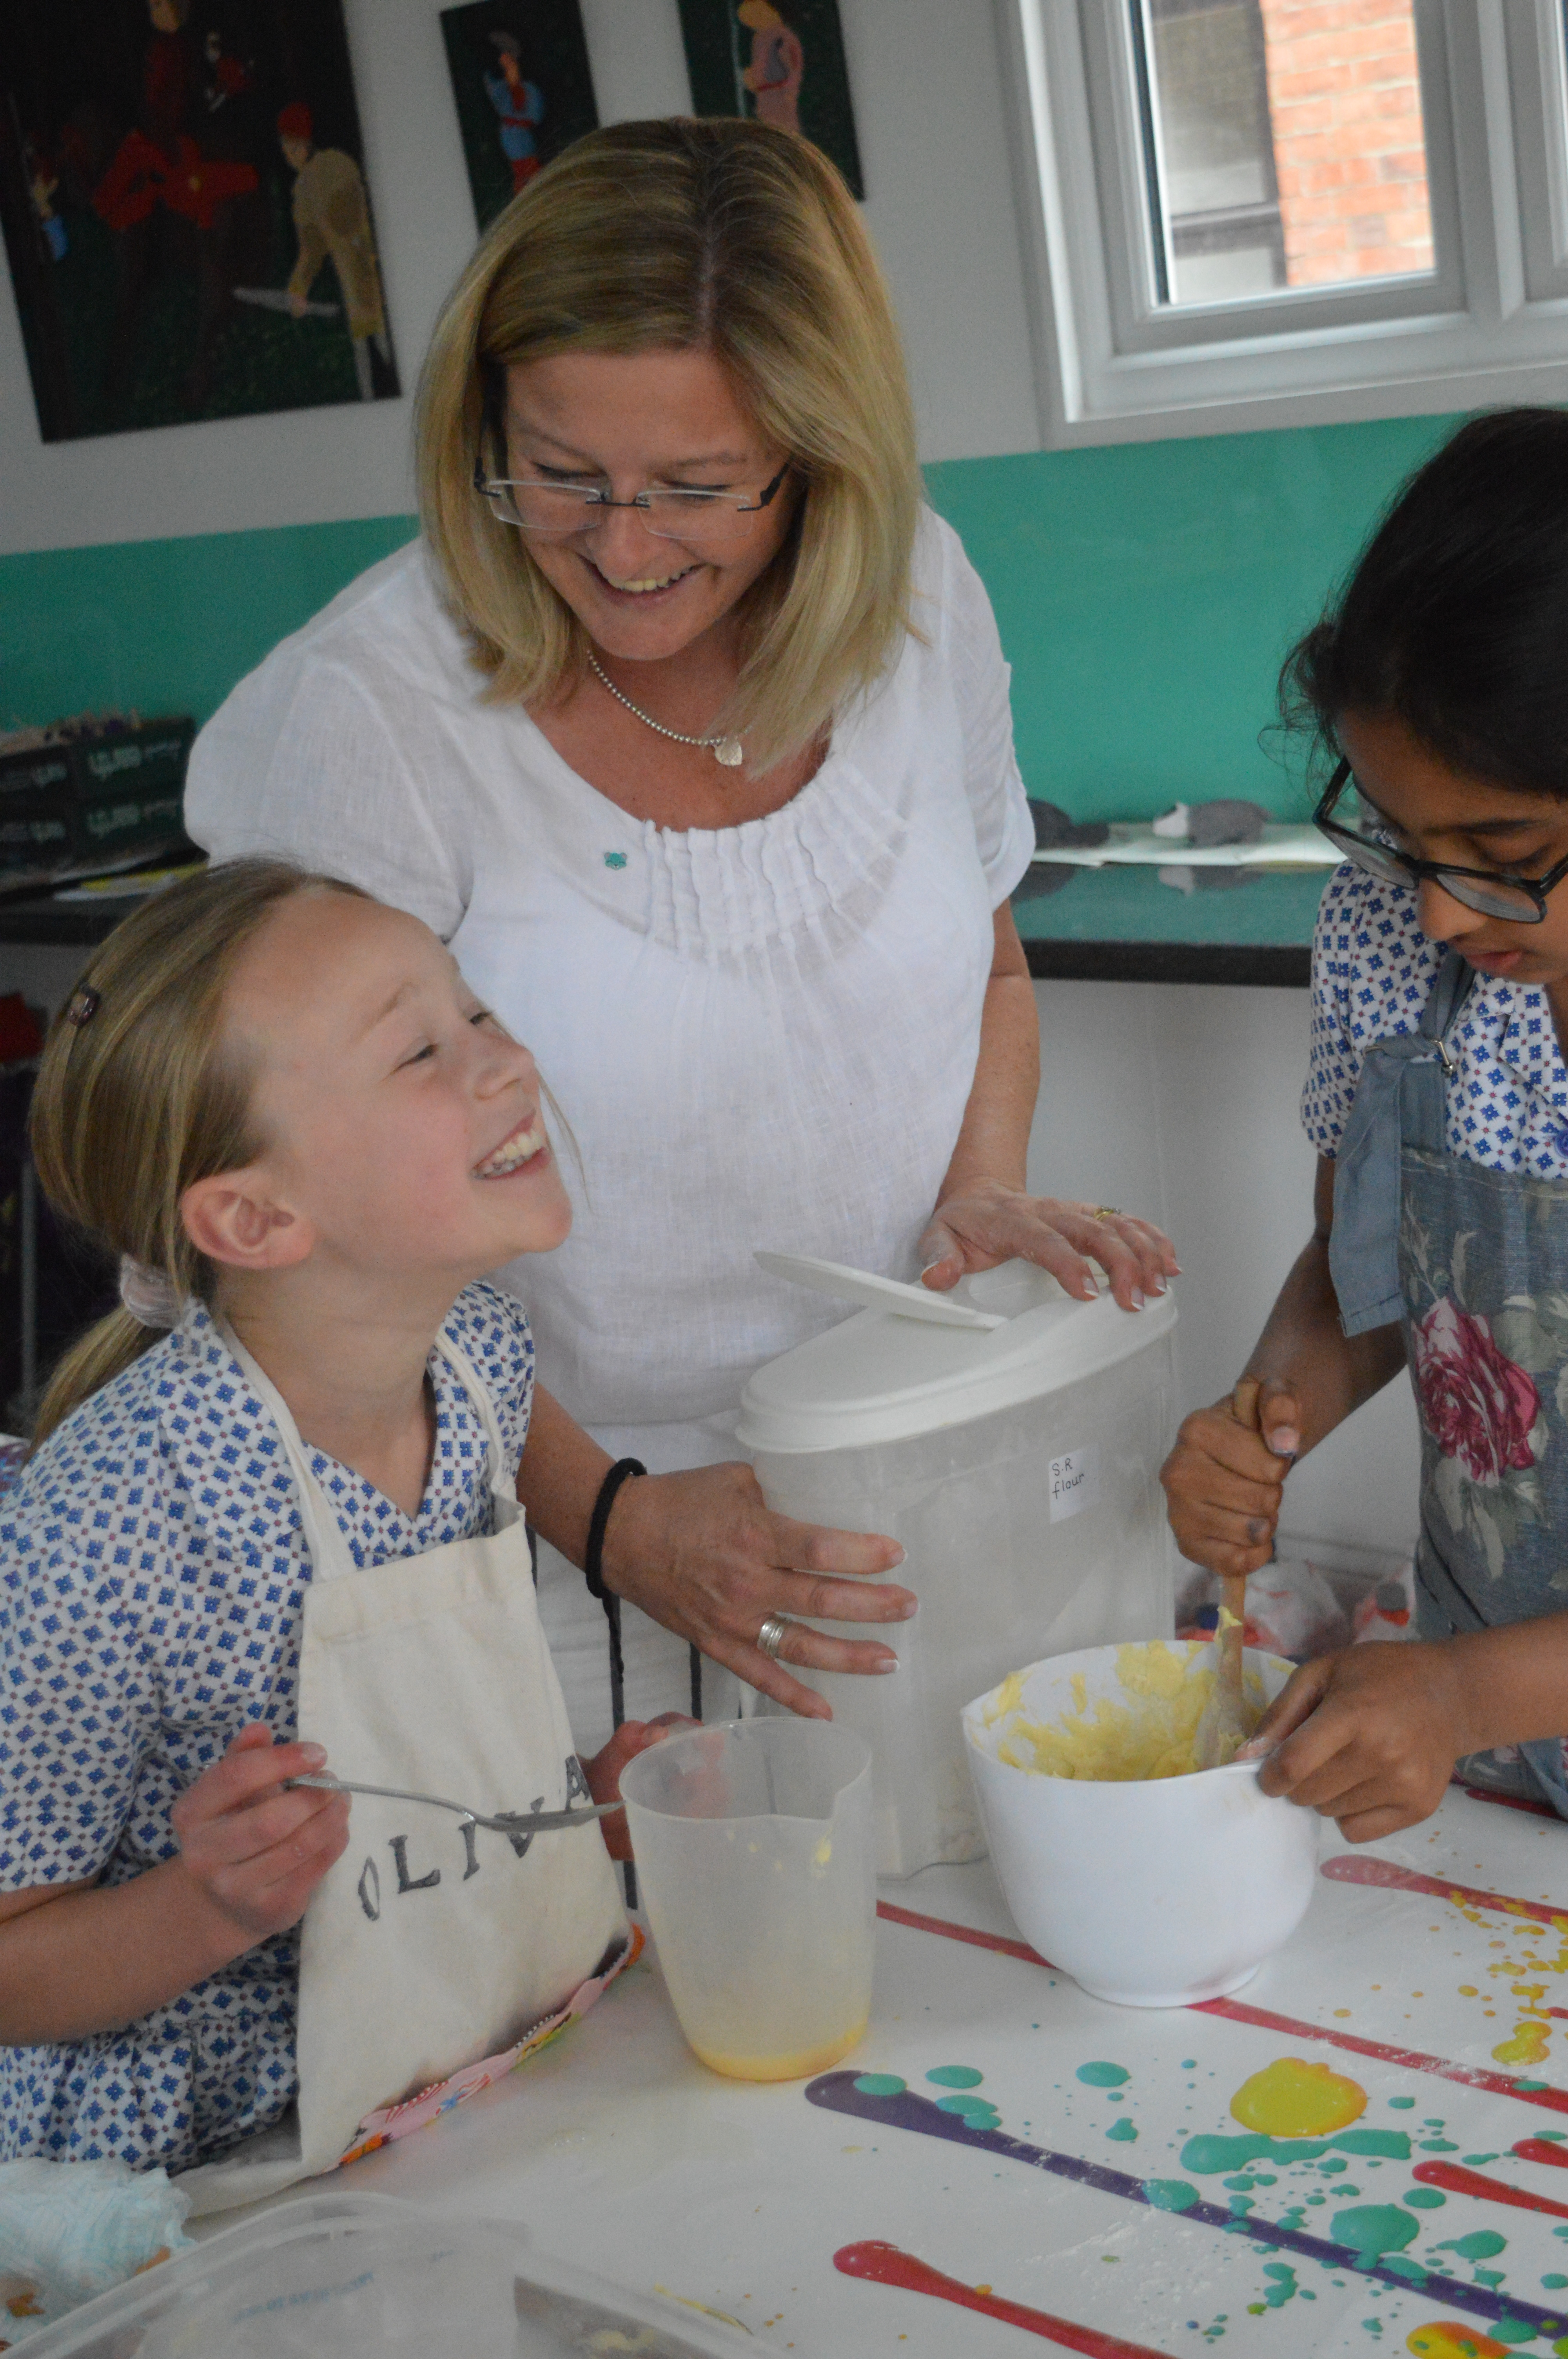 Headmistress, Tracey Wilson, ran a 'Bake Off Club' last year with pupils in Years 4-6